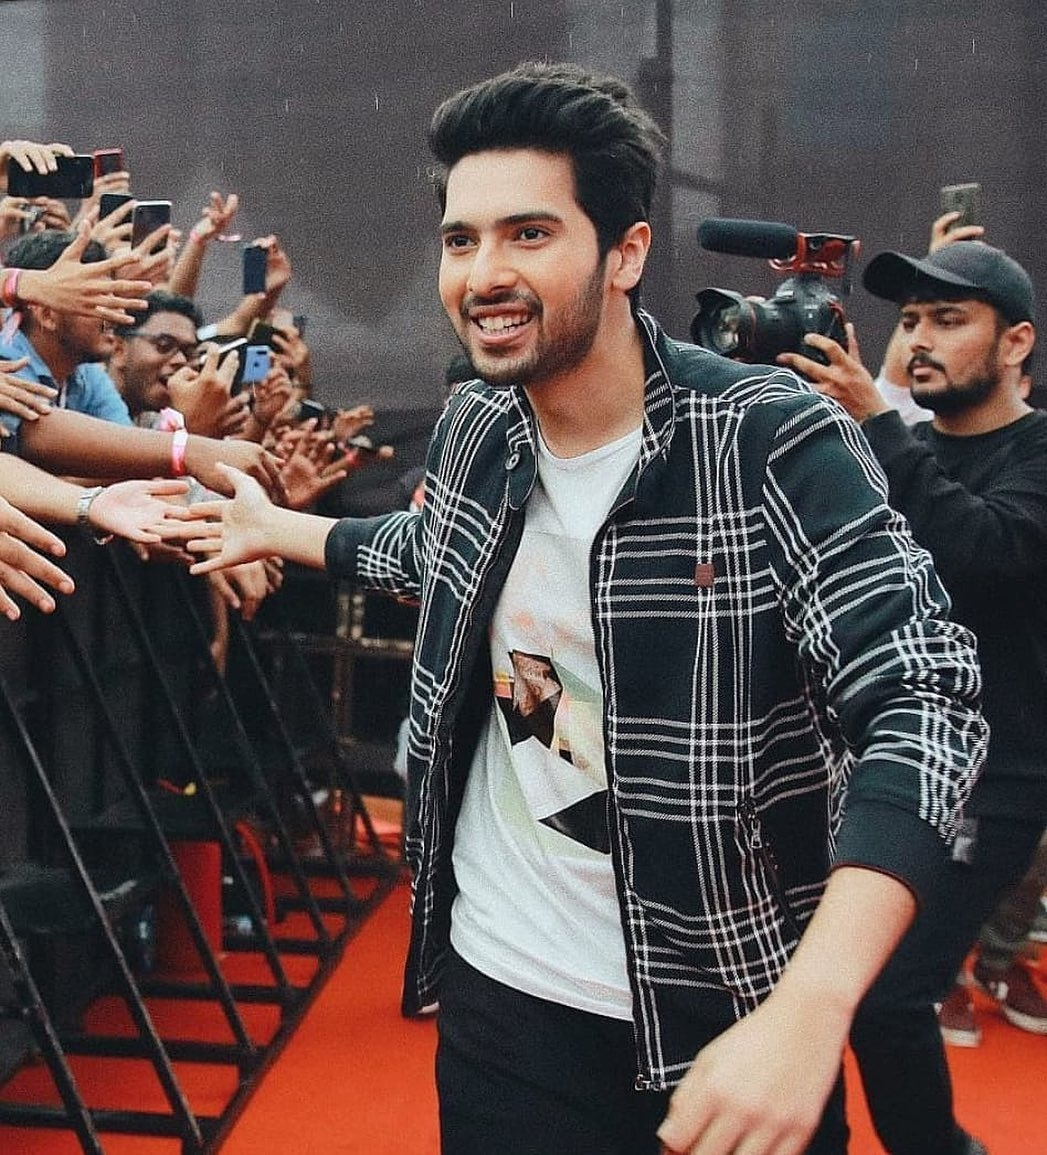 Armaan Malik: It's been so long since I've hung out with my fans